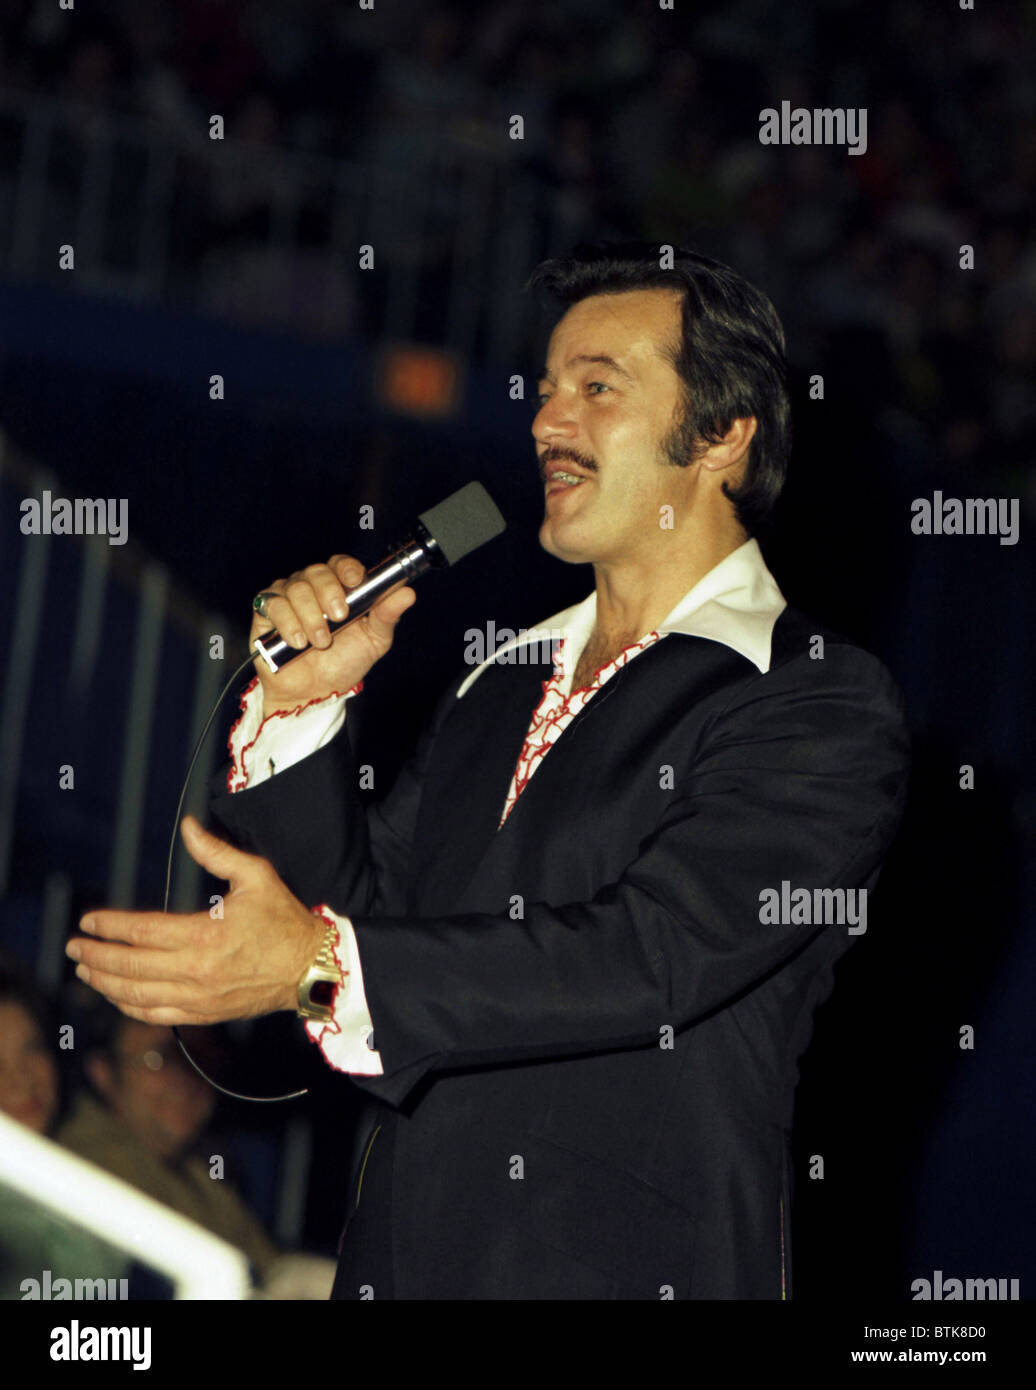 Robert Goulet, 1974, Millrun Playhouse Theater in the Round, Niles, Illinois. - Stock Image